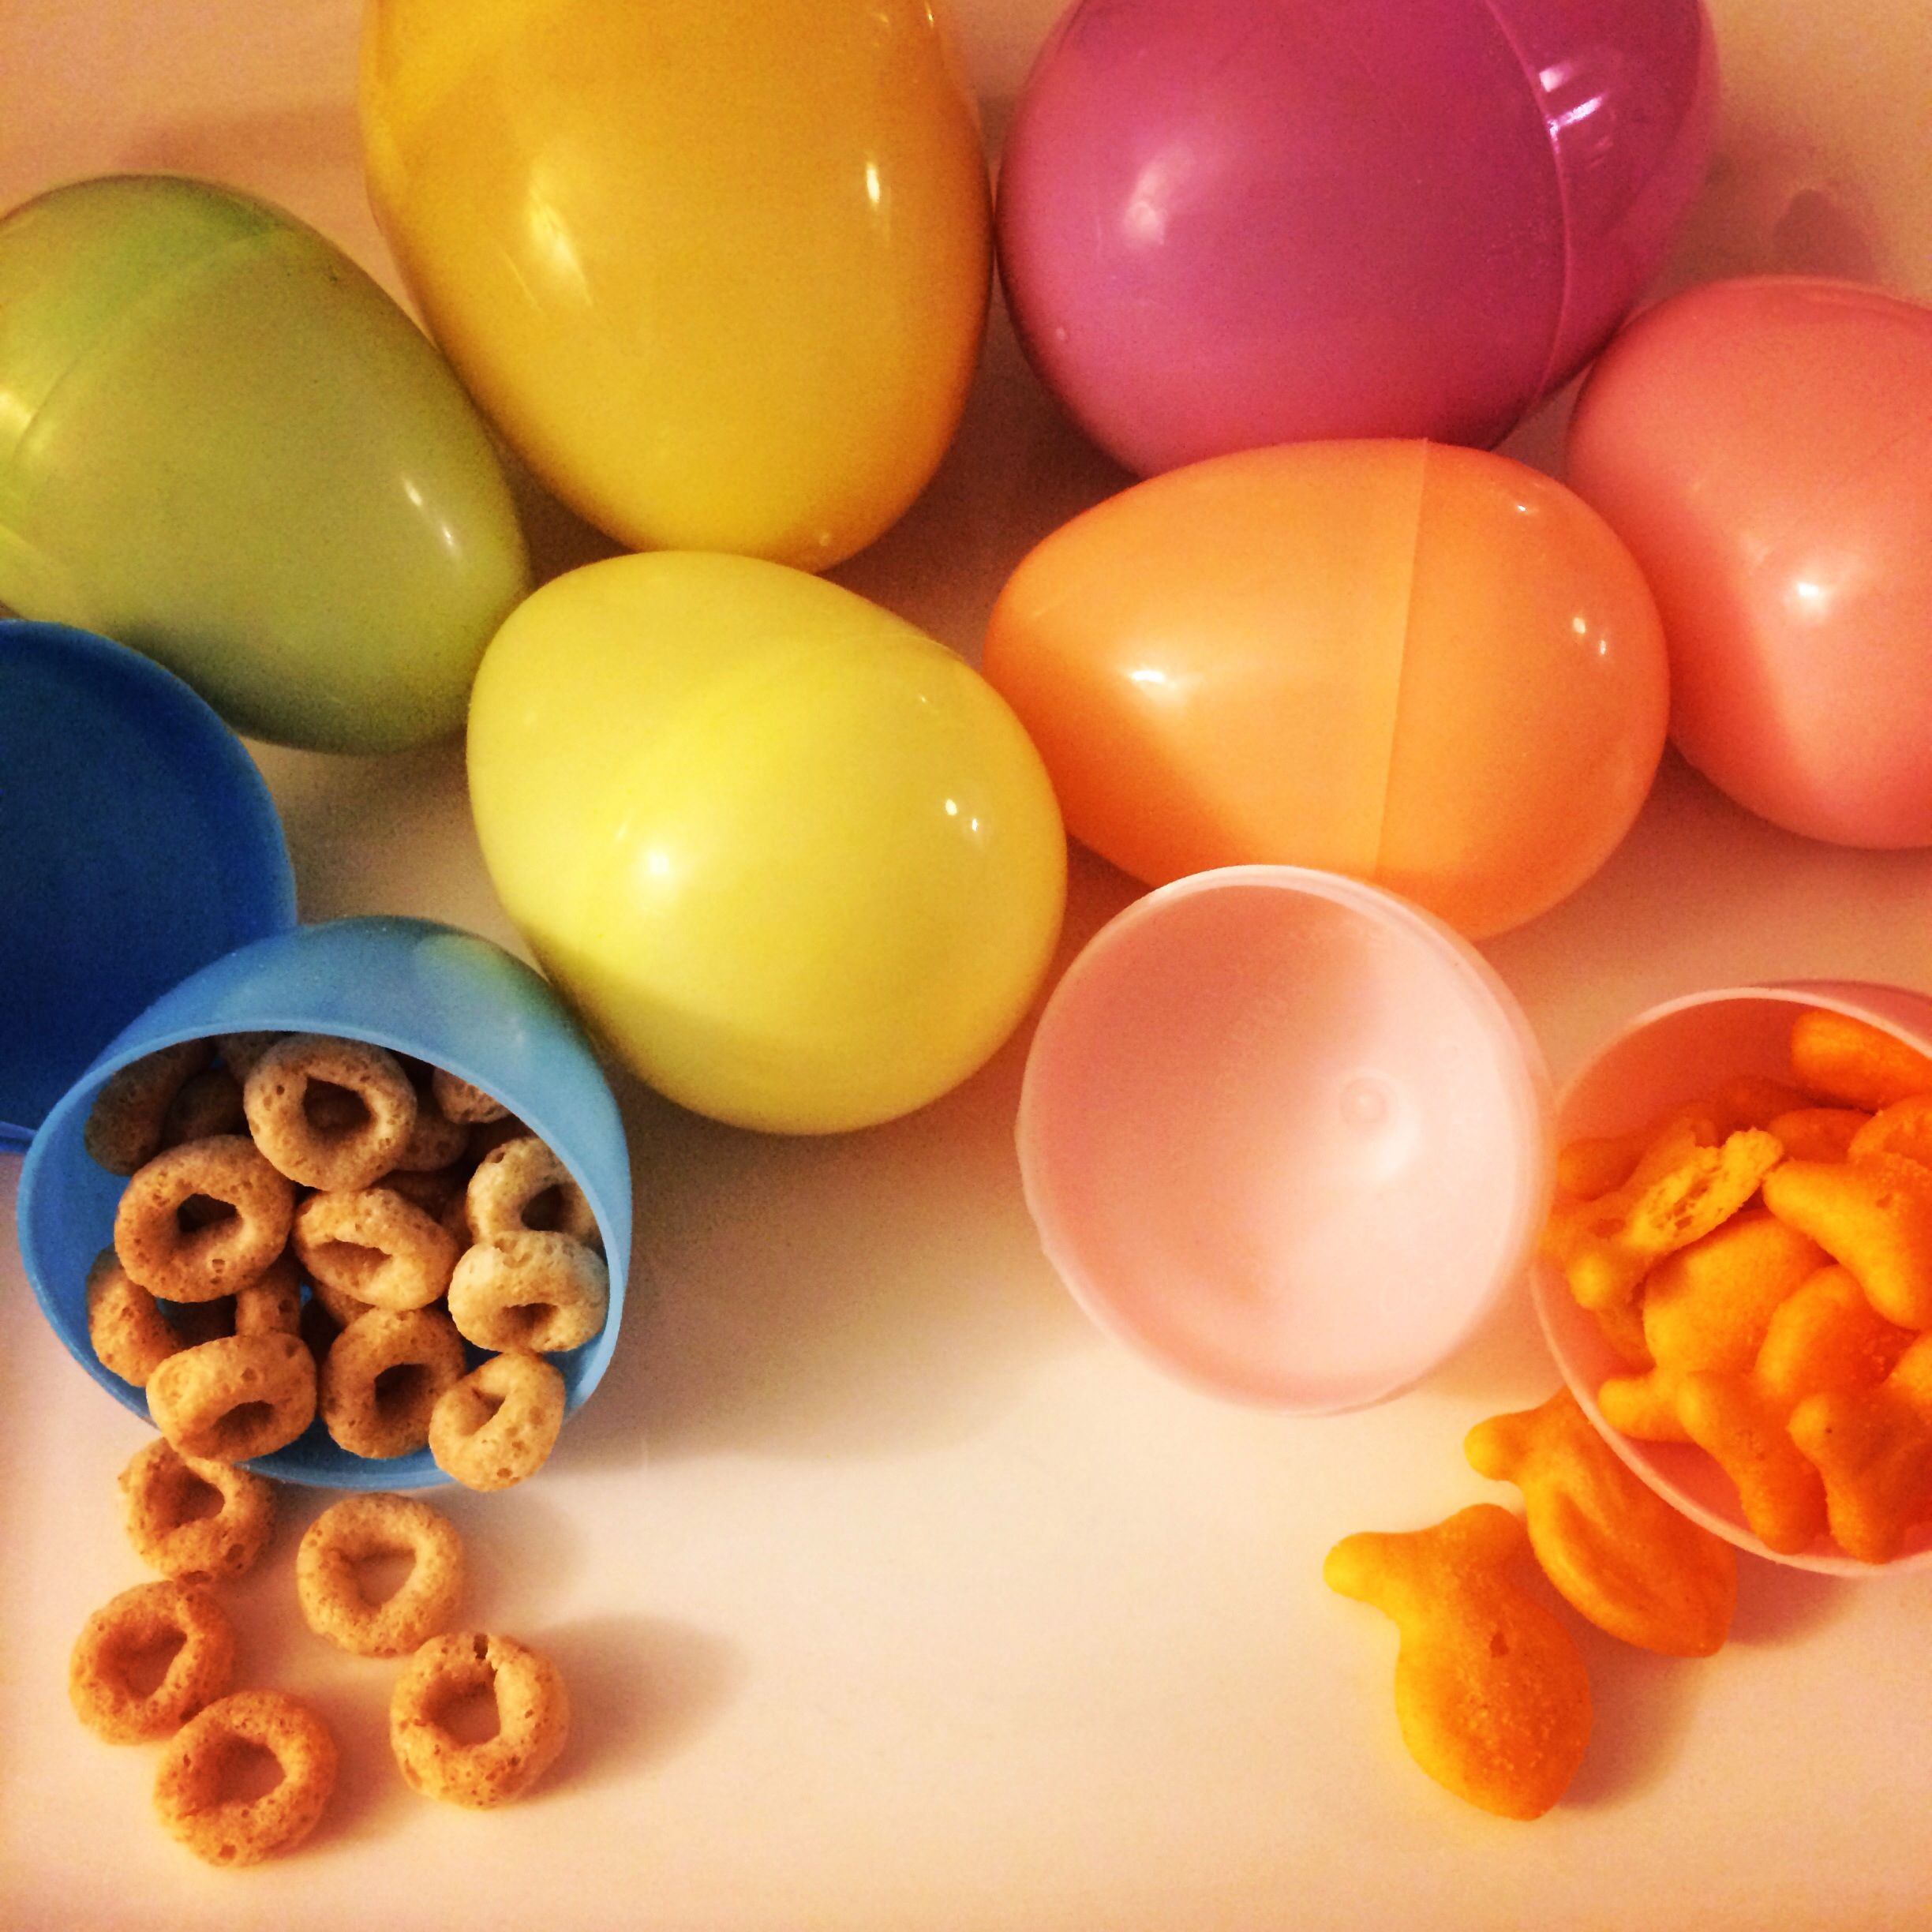 Easter eggs stuffed with Cheerios and Goldfish for my 17 month old. Great for babies!